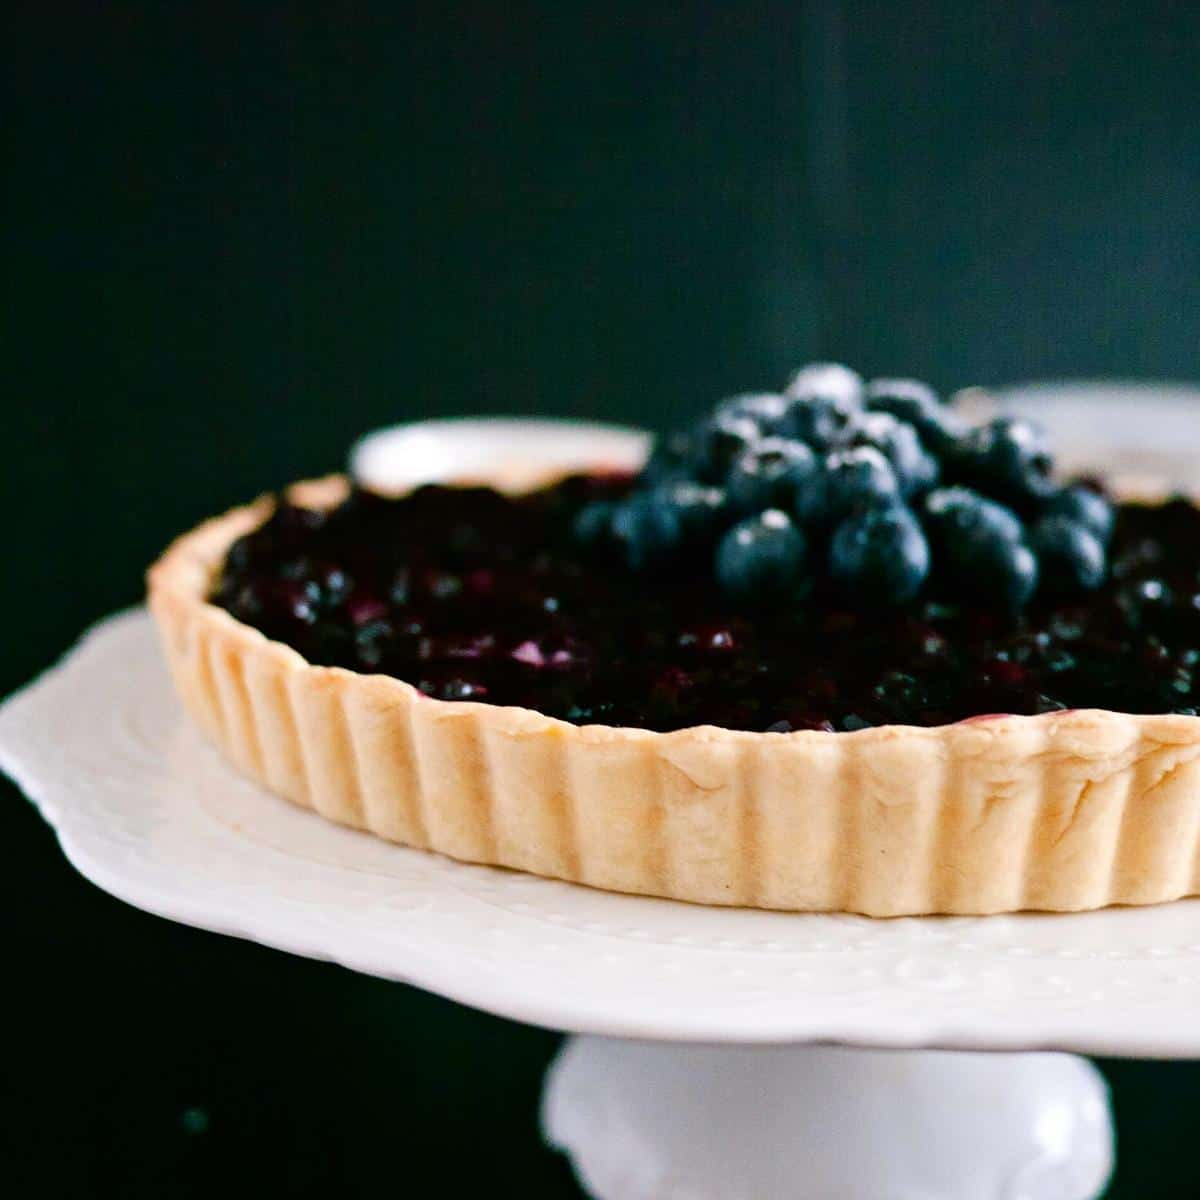 A blueberry tart with shortcrust pastry.